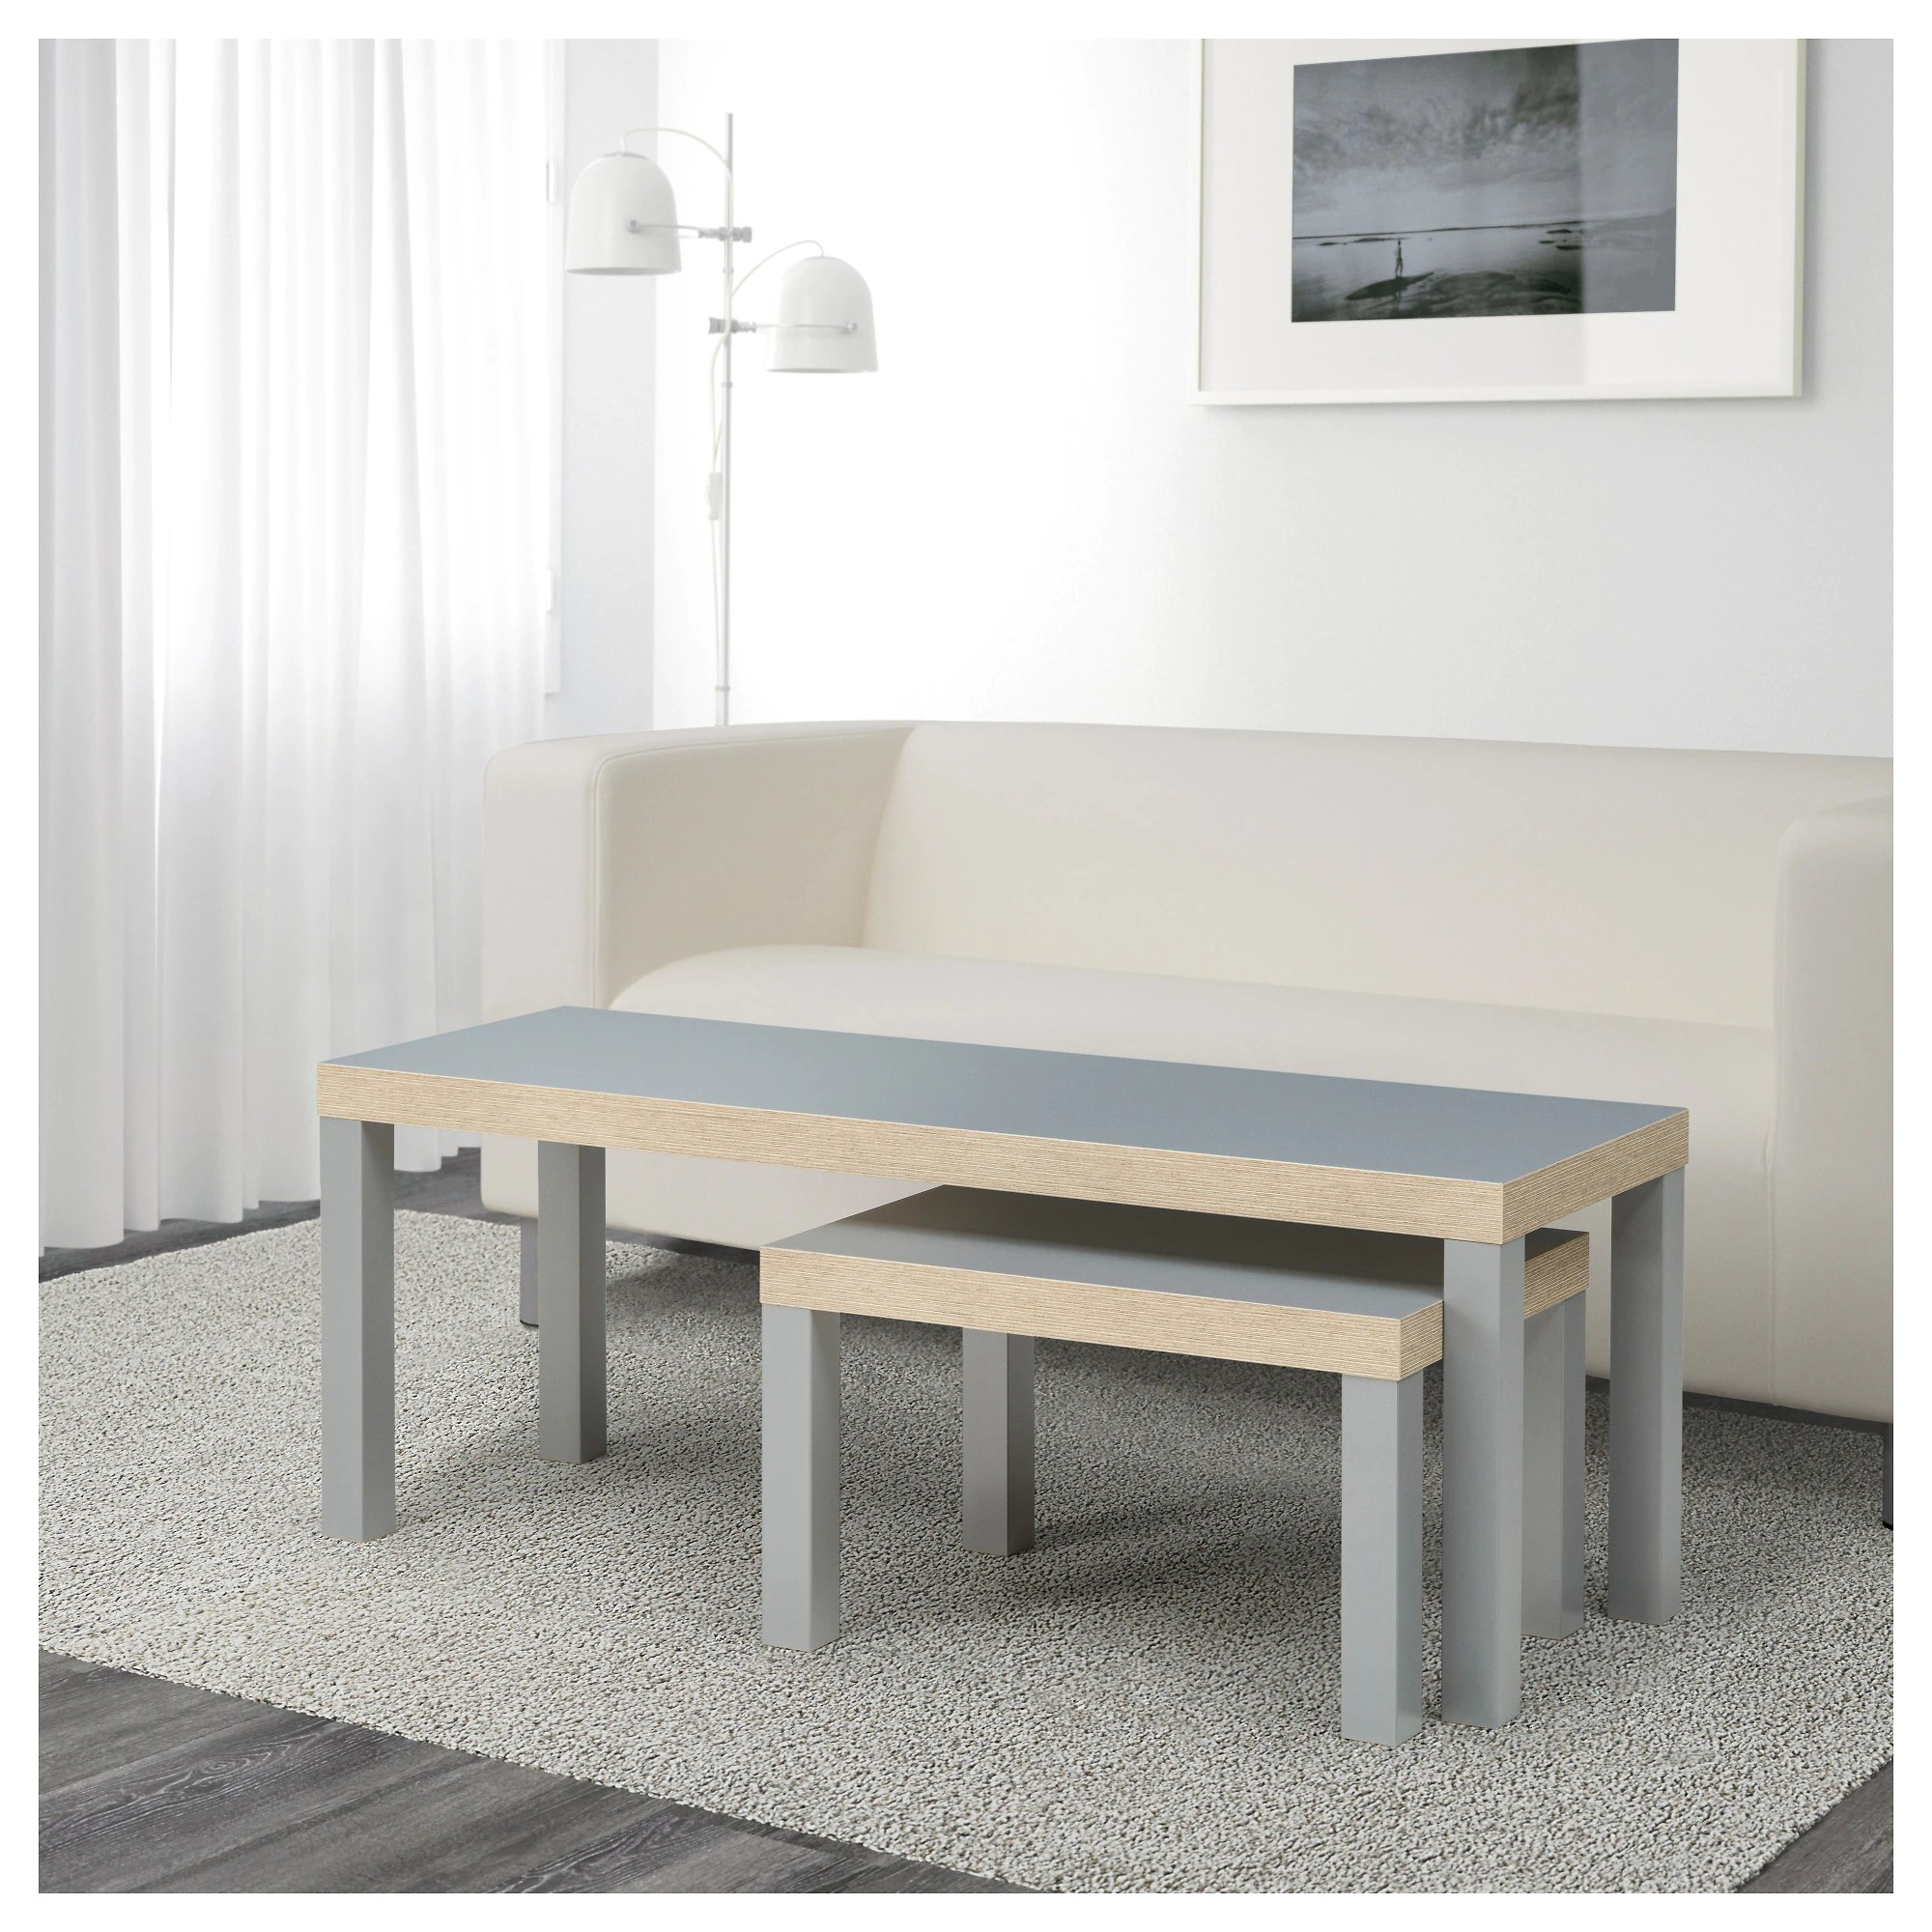 Ikea Lack Satztische In Grau 2 Stück Beistelltische Wohnzimmertische Home Furniture Diy Tables Other Tables